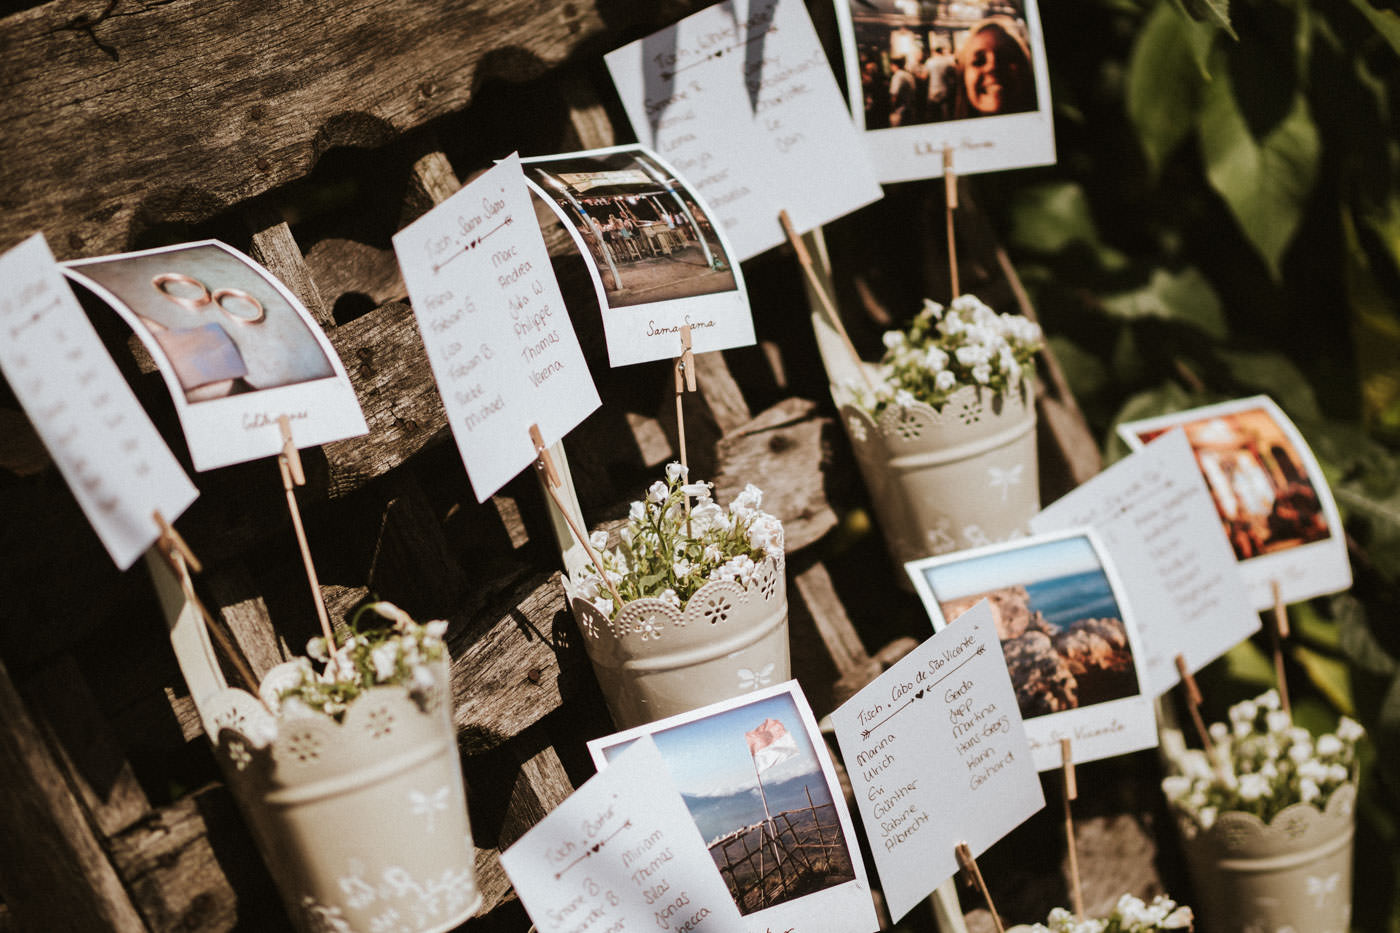 Seating plan thought differently - with Polaroids and Flowers